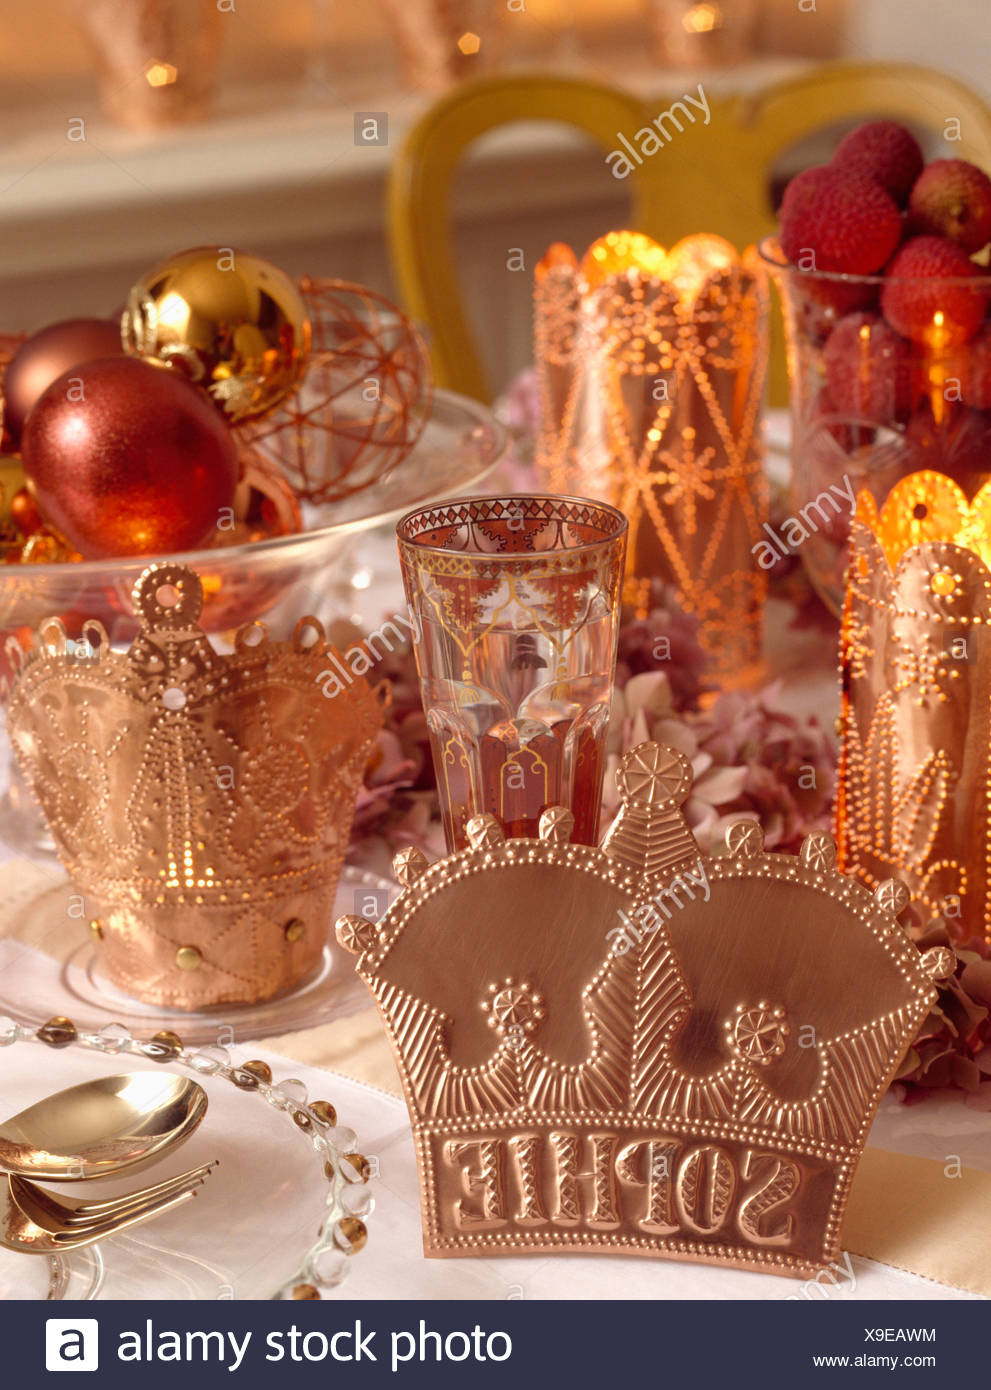 Copper placenames on table with candles and metallic baubles - Stock Image